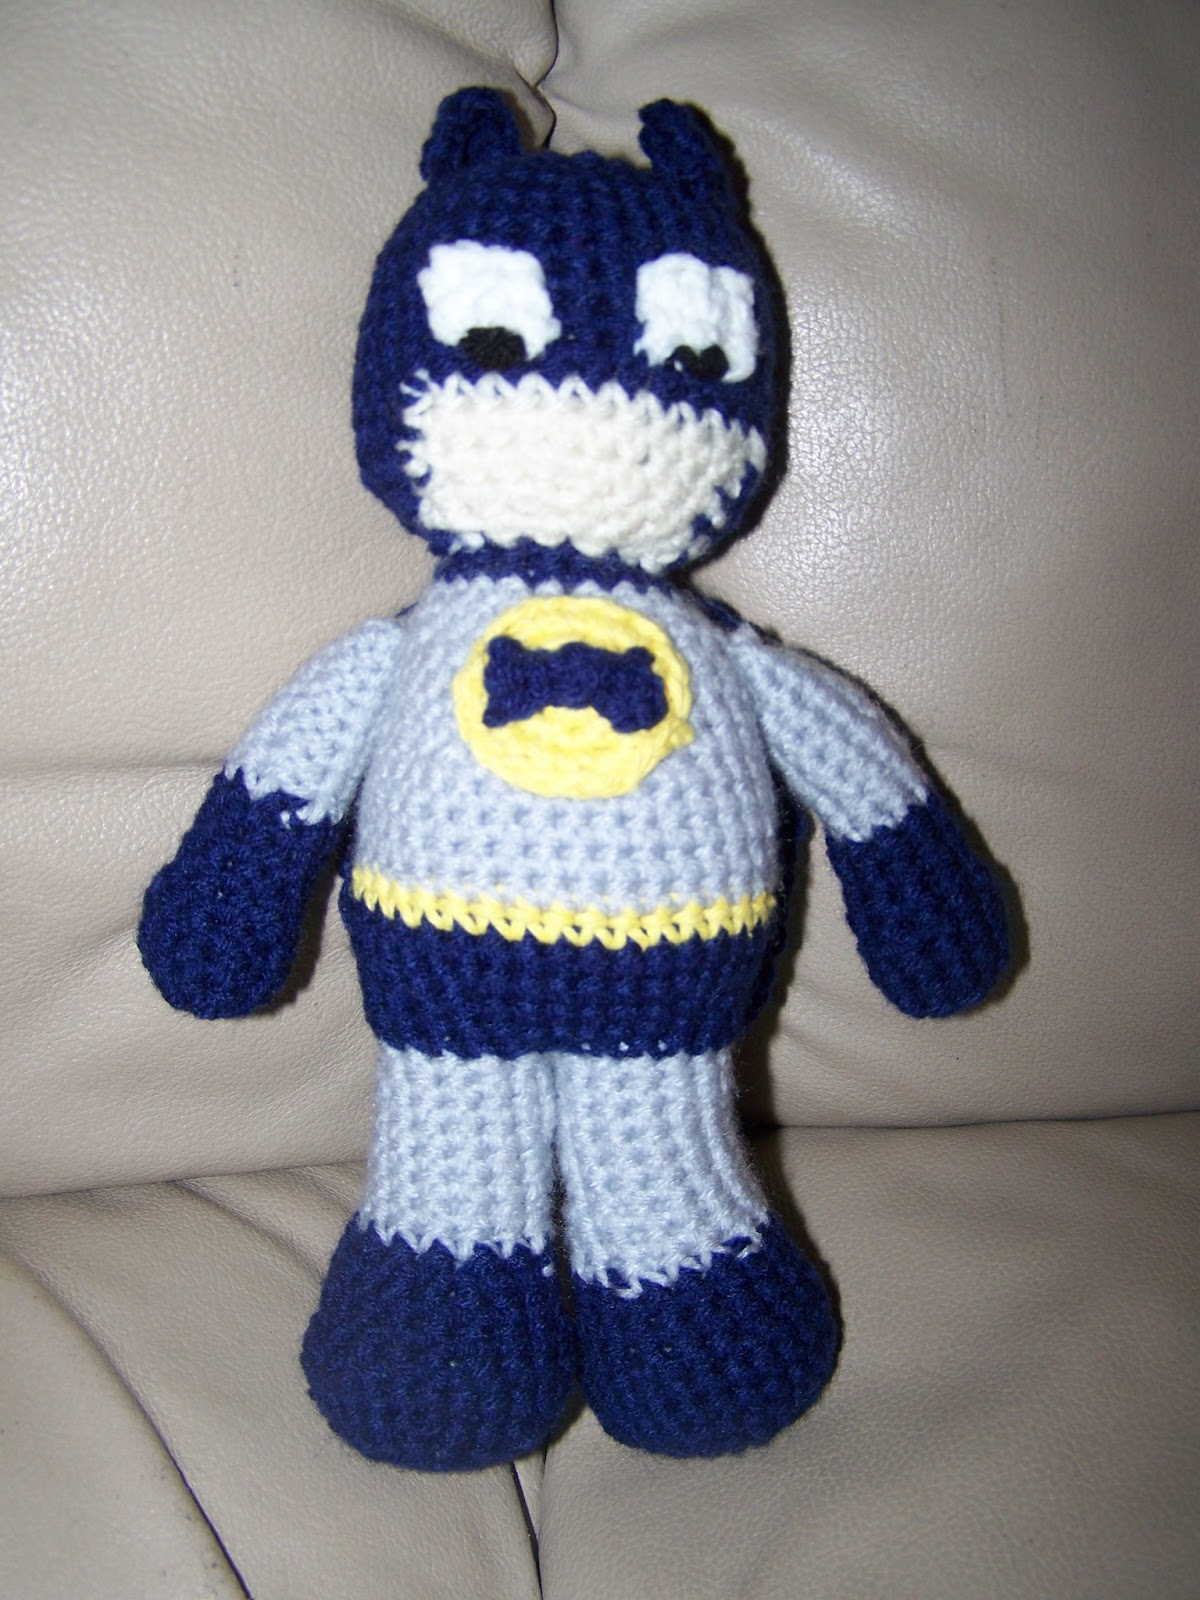 Amigurumi Crochet Batman : Cooking and Crocheting: Batman Crochet Doll